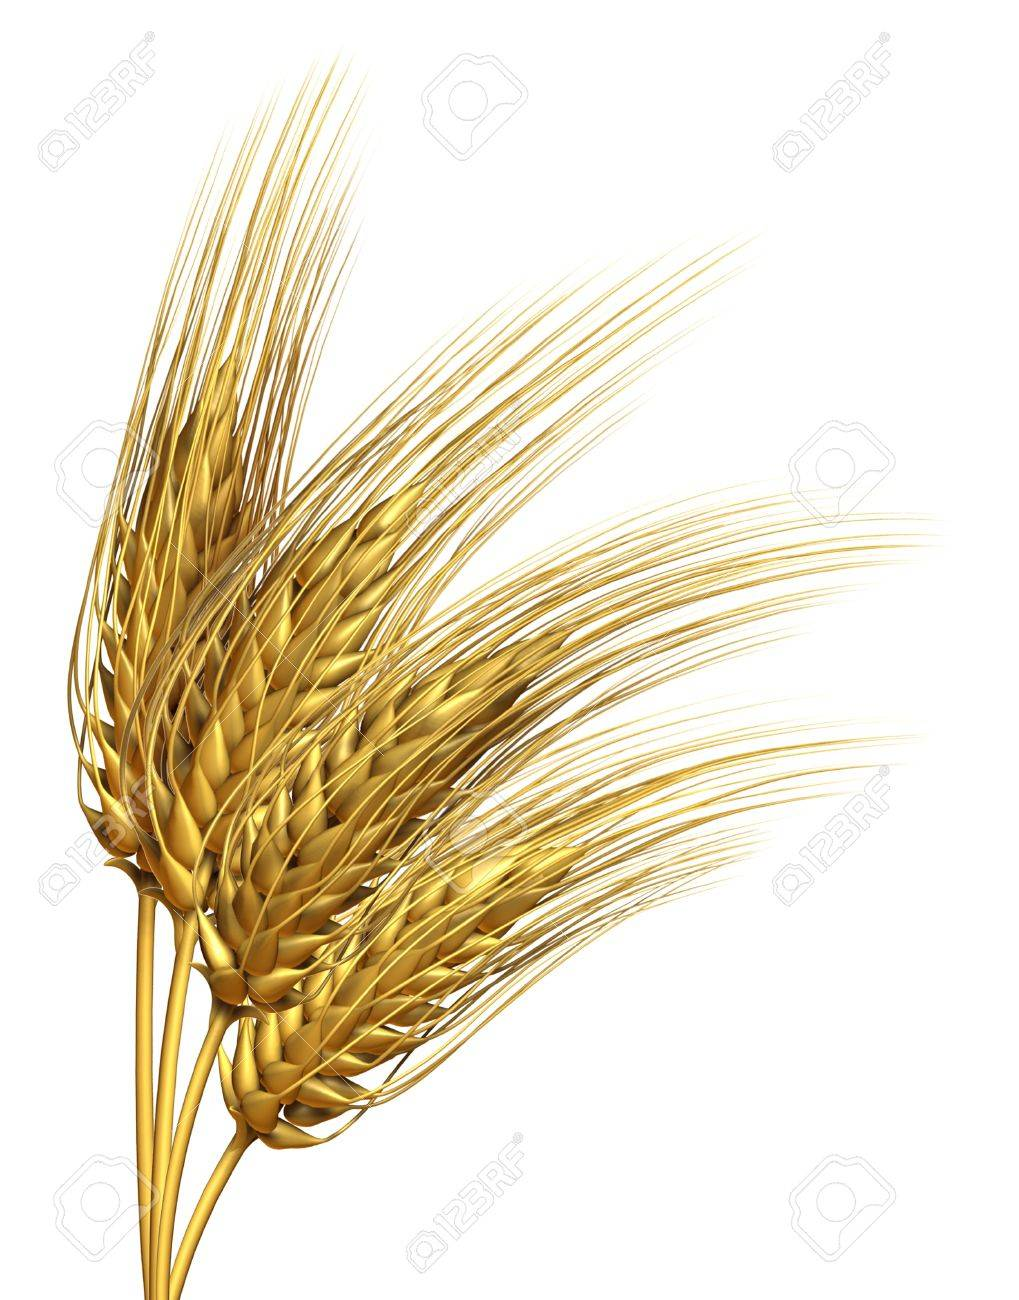 Wheat Or Barley Harvested Crop Design Element Isolated On A White Stock Photo Picture And Royalty Free Image Image 14118894